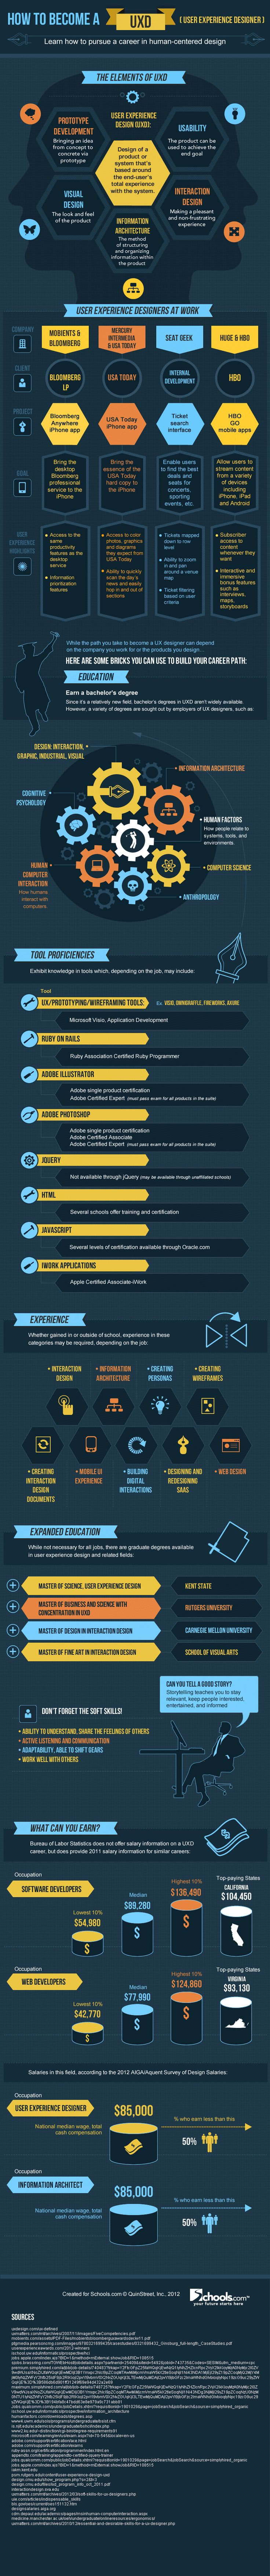 UXD INFOGRAPHIC: How To Become a UX Designer - UX Motel